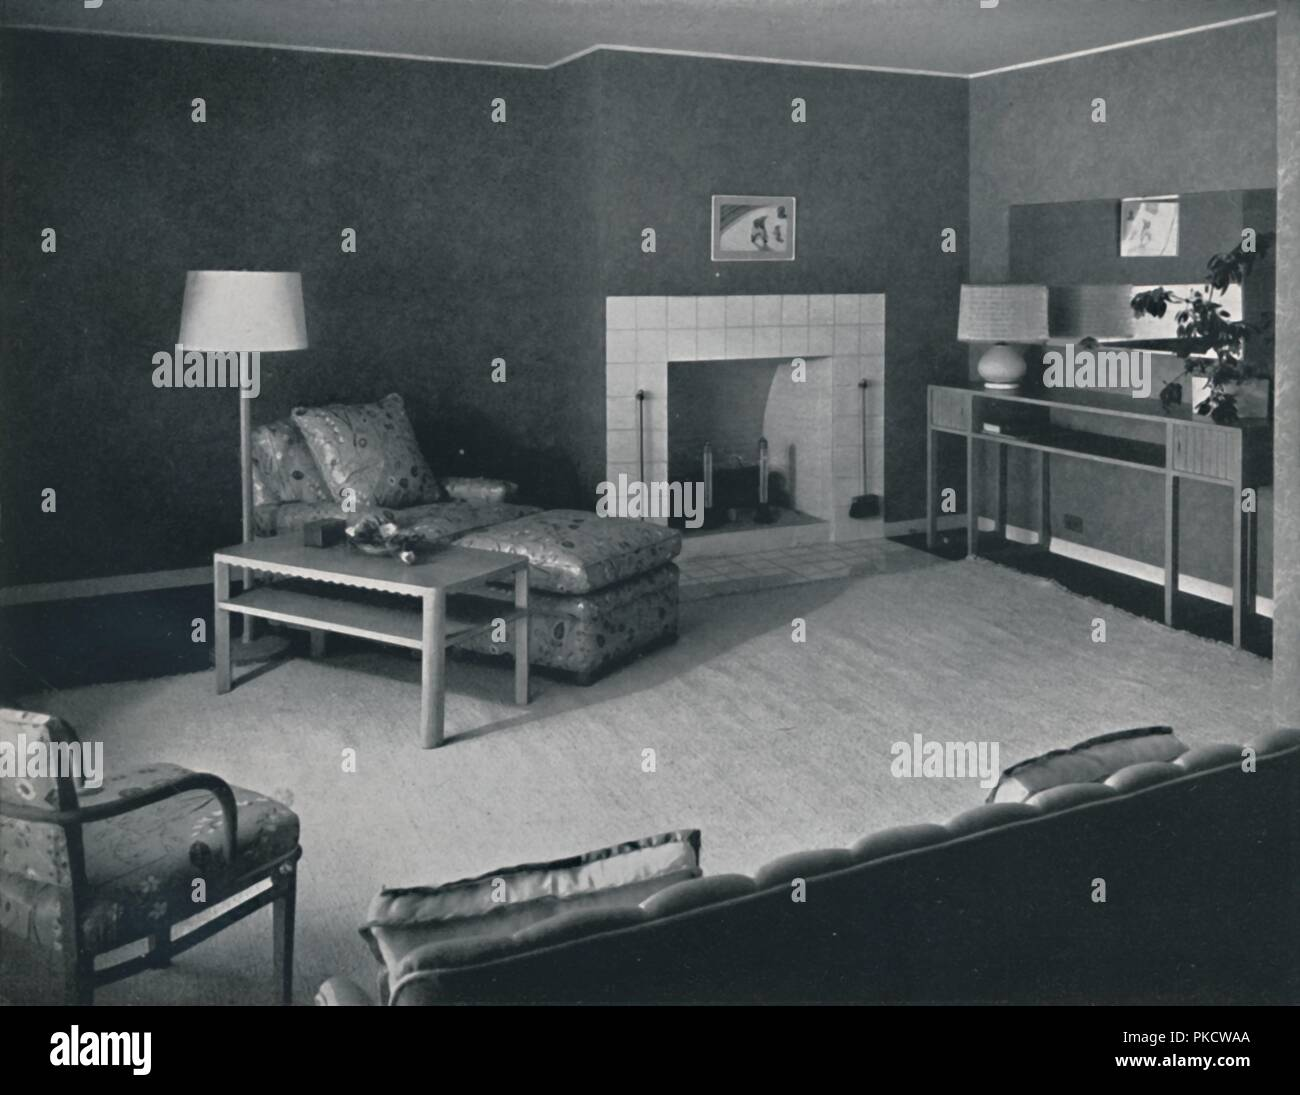 'Bedroom in the house of Mr. Anatole Litvak in Saint Monica, California', USA, 1942. Architects: Douglas Honnold and George Vernon Russell. Home of film director Anatole Litvak, with interior design by fellow director Harold W Grieve. Tiled fireplace, pickled oak furniture, cotton rug, flowered chintz upholstery, lampshade of woven reed, cellophane and raw silk. From Decorative Art 1942 - The Studio Year Book, edited by C. G. Holme. [The Studio Ltd., London, 1942] - Stock Image